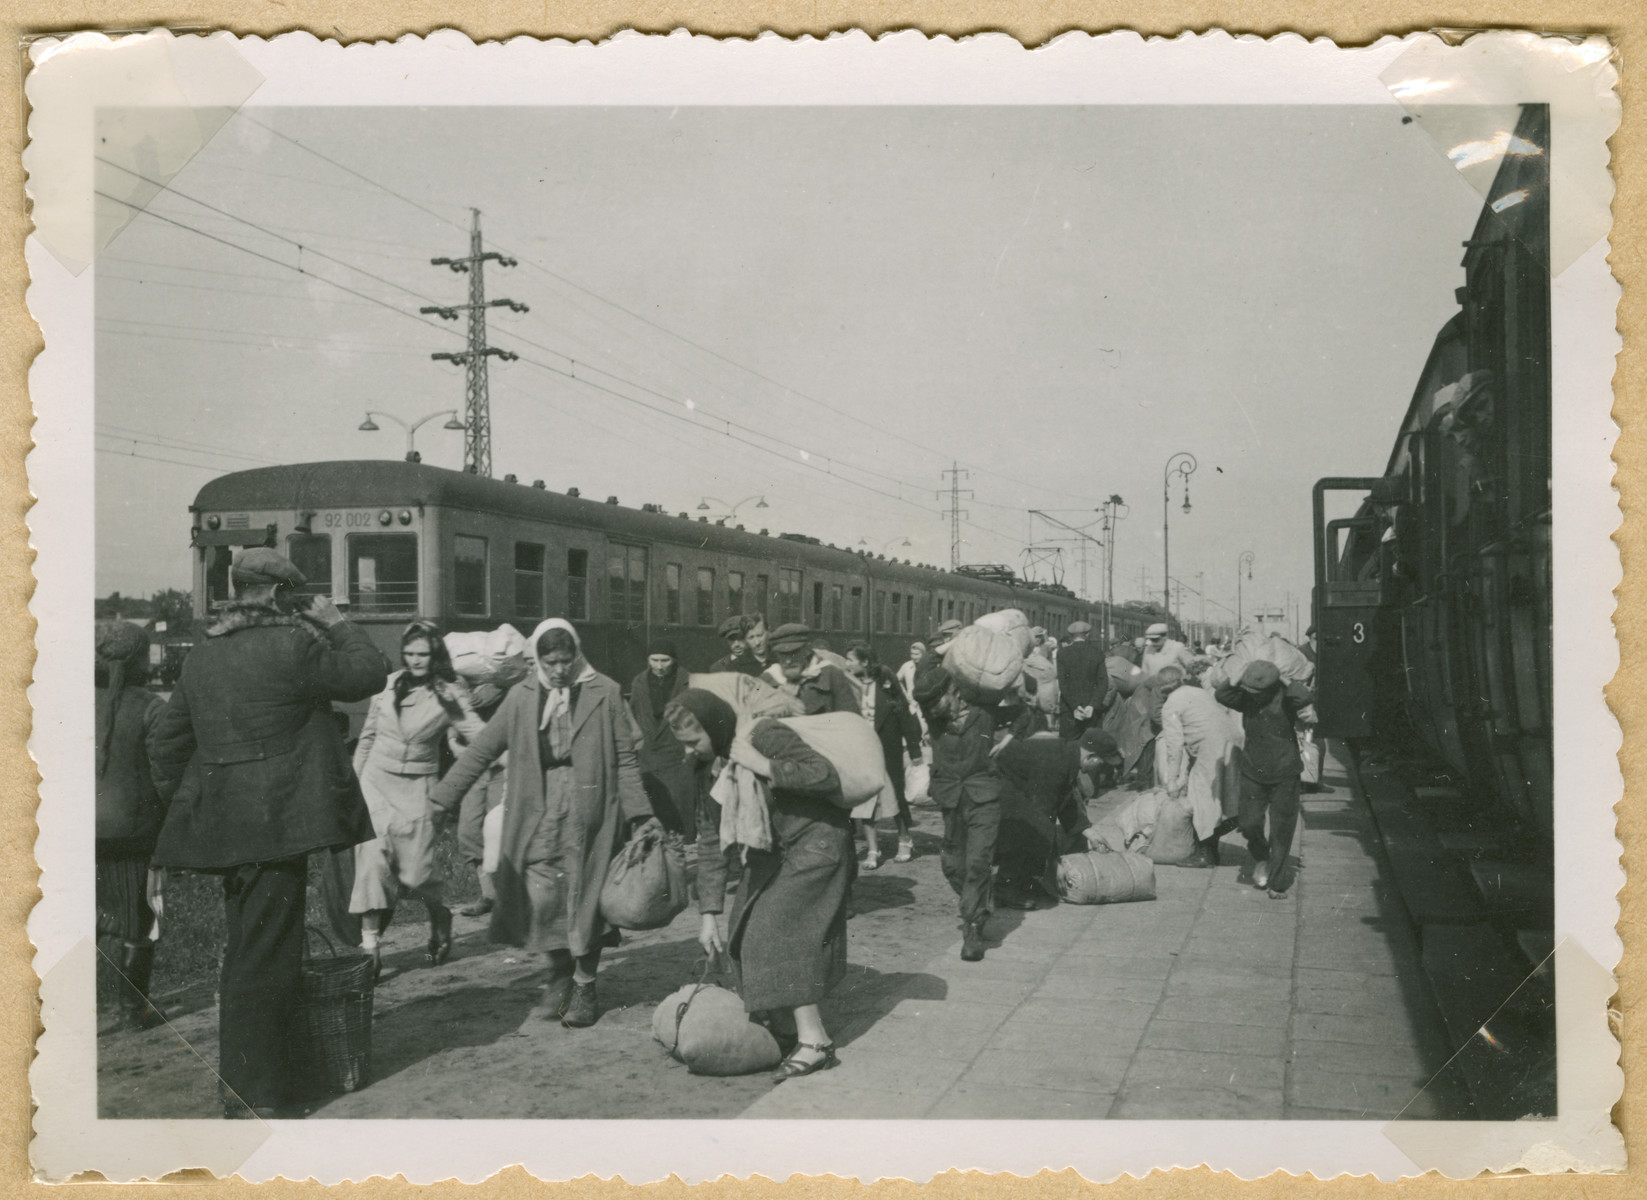 Men and women carrying bundles walk down the platform of a train station in an unidentified Polish city.